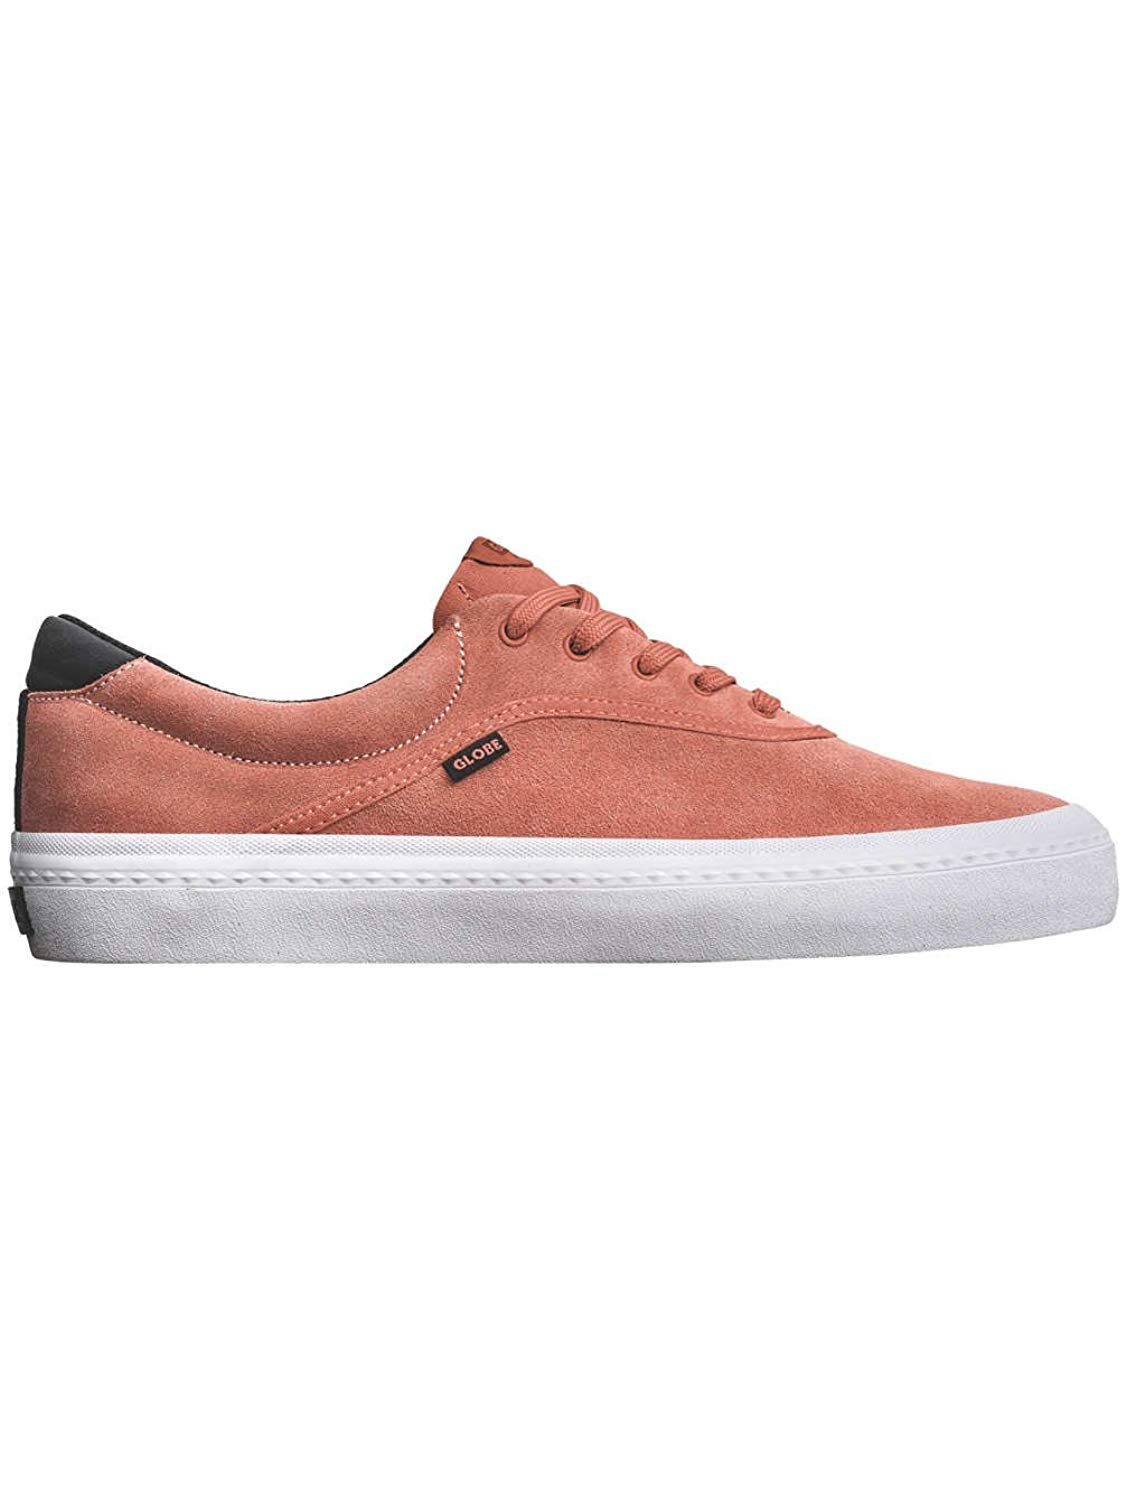 f36a4465a7 Get Quotations · Globe Sprout Mens Skate Shoes in Guava Orange